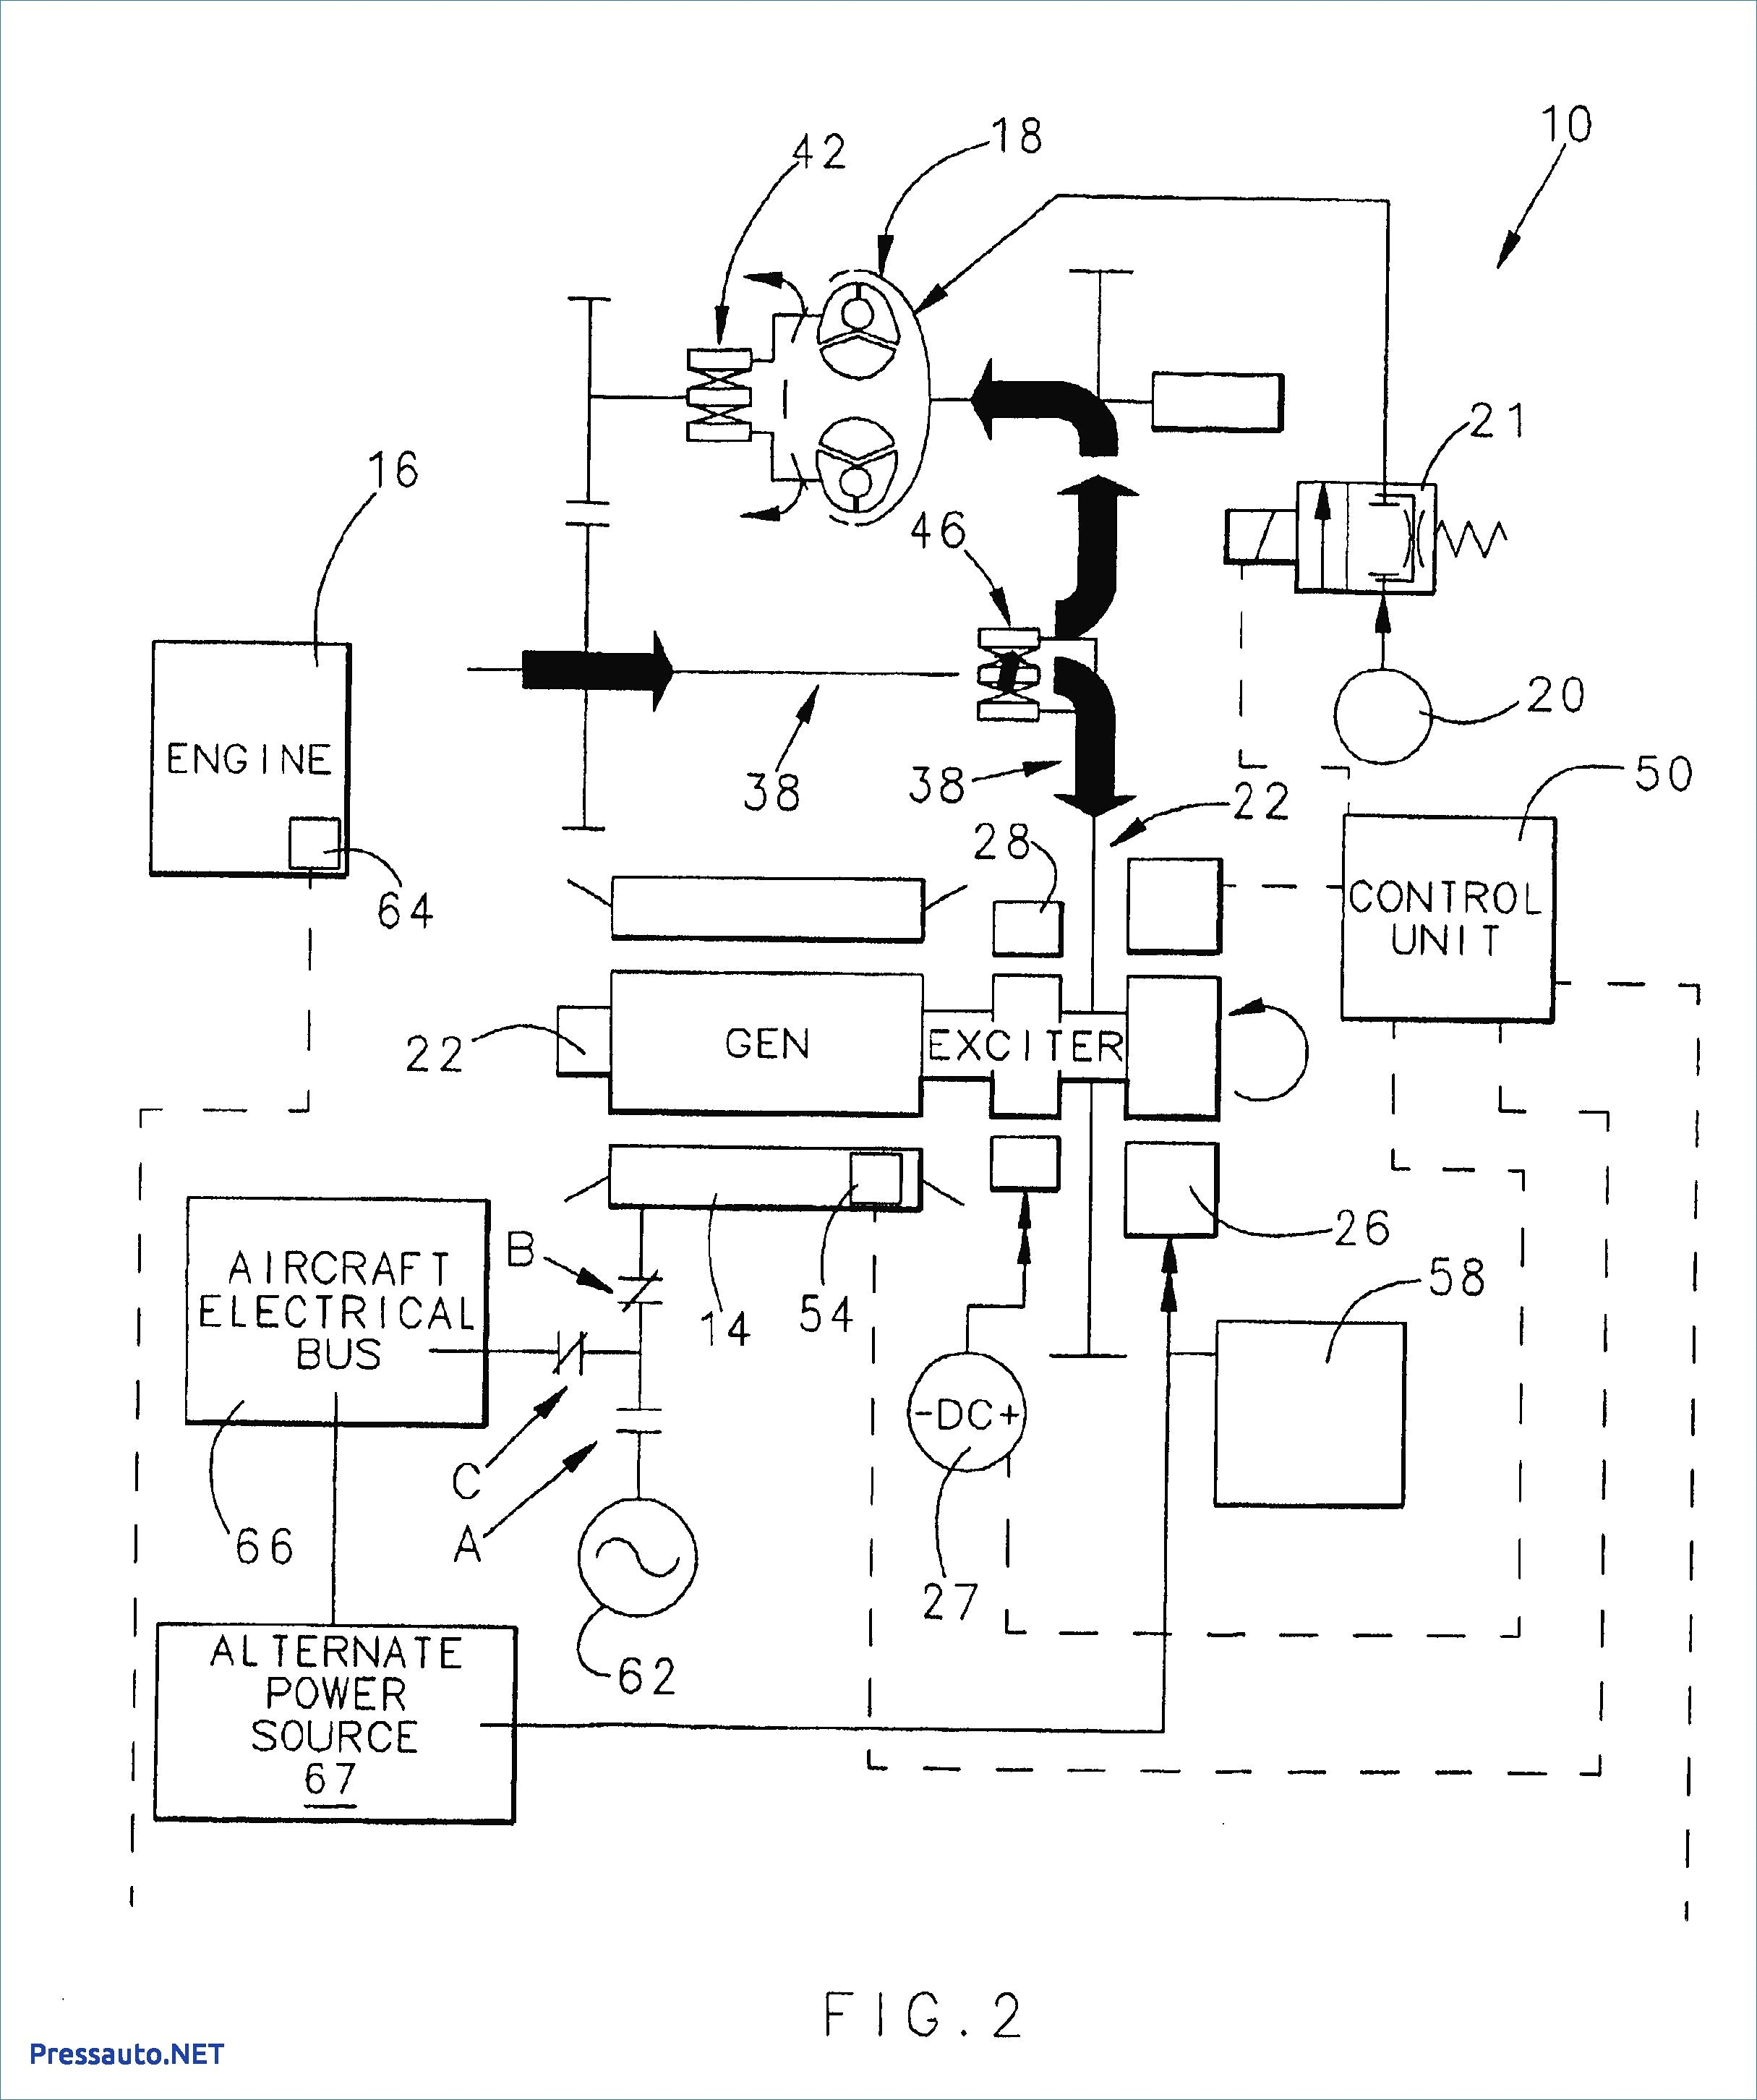 medium resolution of 50dn alternator diagram wiring diagram forward 50dn alternator diagram